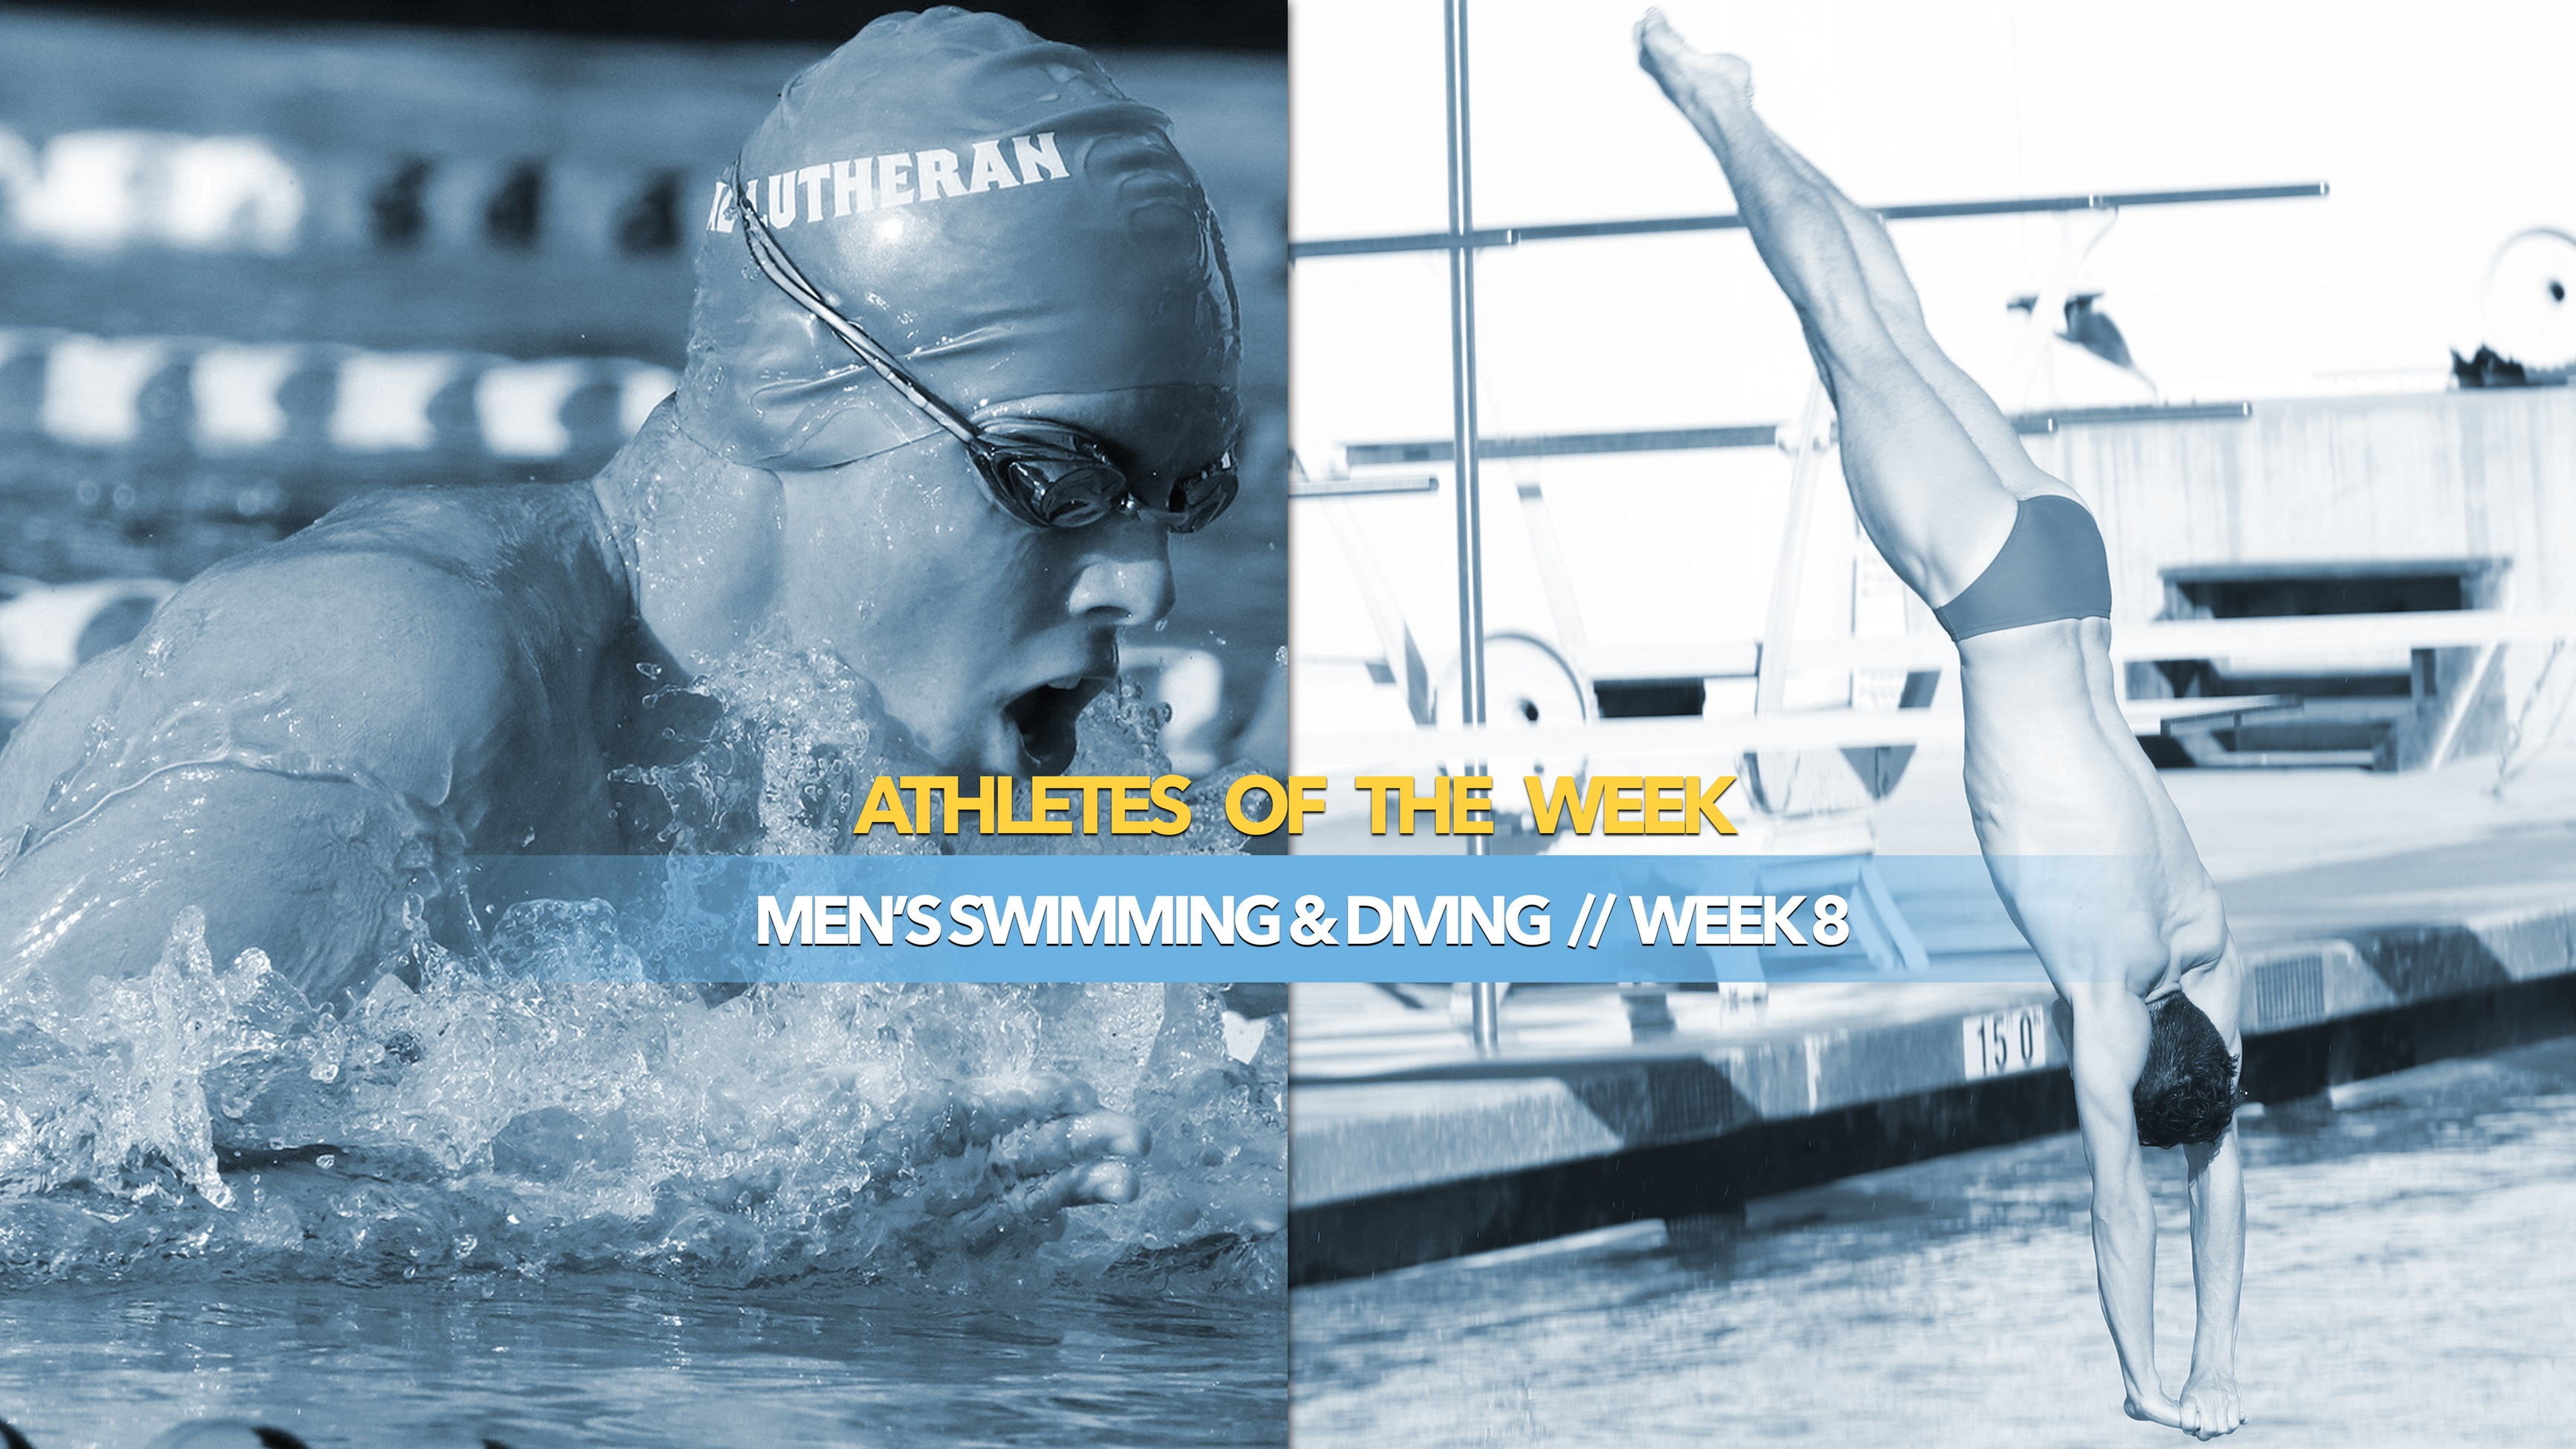 Men's Swimming & Diving Athlete of the Week: January 6, 2020